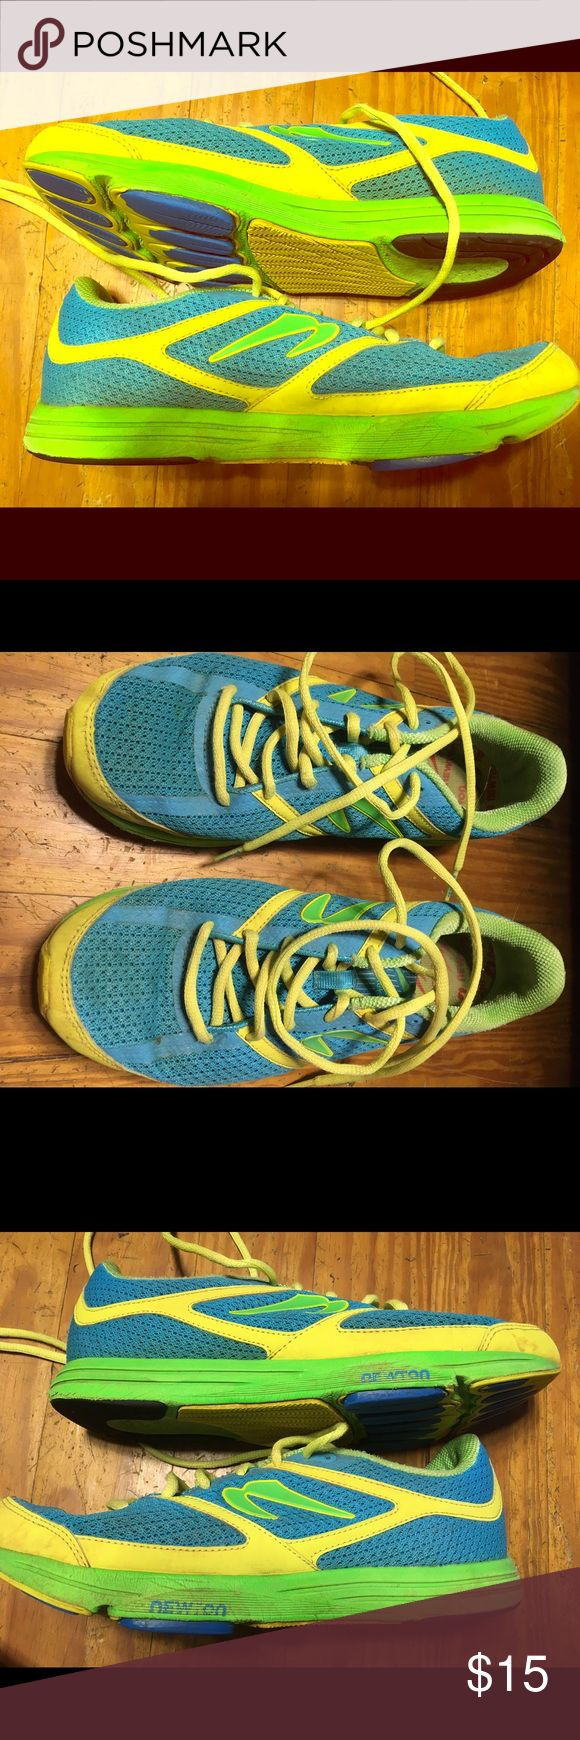 Newton running shoes These running shoes have been used but are in good condition.  They're great for if you want them to walk or hike in.  As shown by the last two pictures, the tread is only worn down a little (where the blue turns to yellow is all it has been worn down), so these will work for running as well.  These are great for if you want to try out the brand without buying an expensive pair of shoes and maybe realizing that they're not so great.  I actually liked them - I just don't…